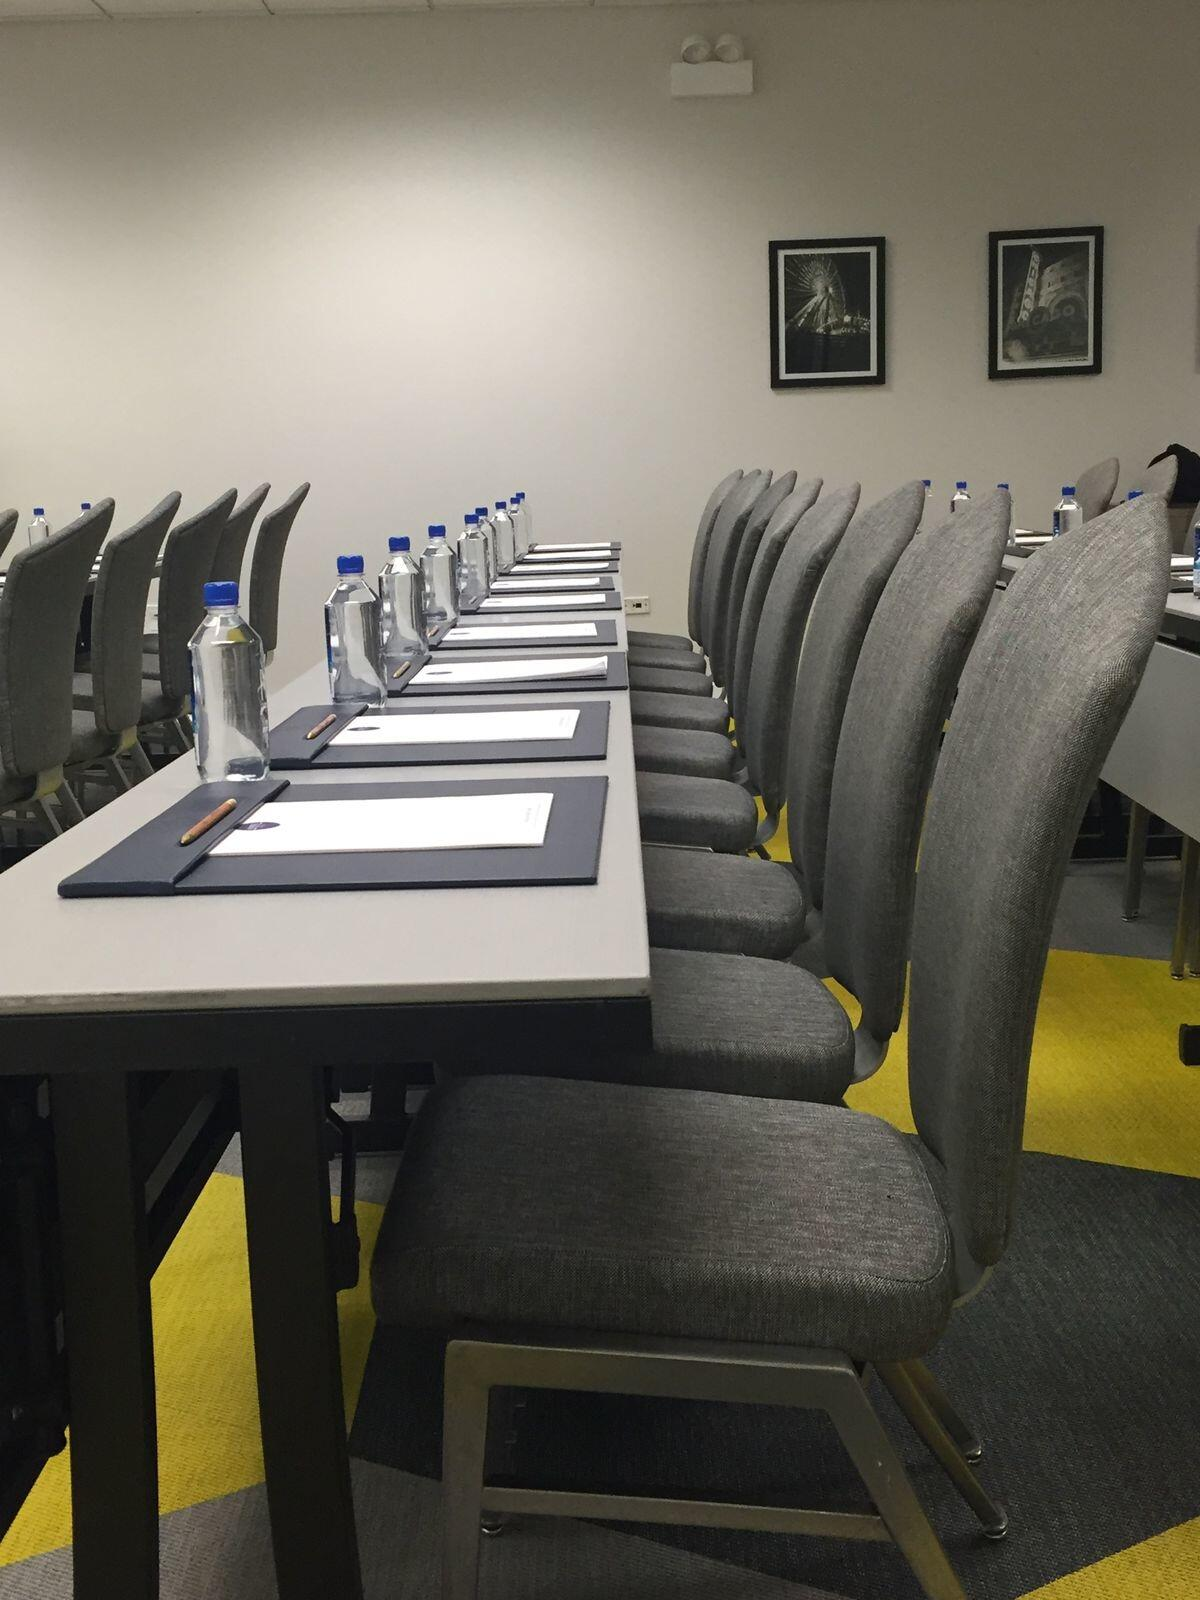 Classroom Setup in Kinzie Hotel Conference Room